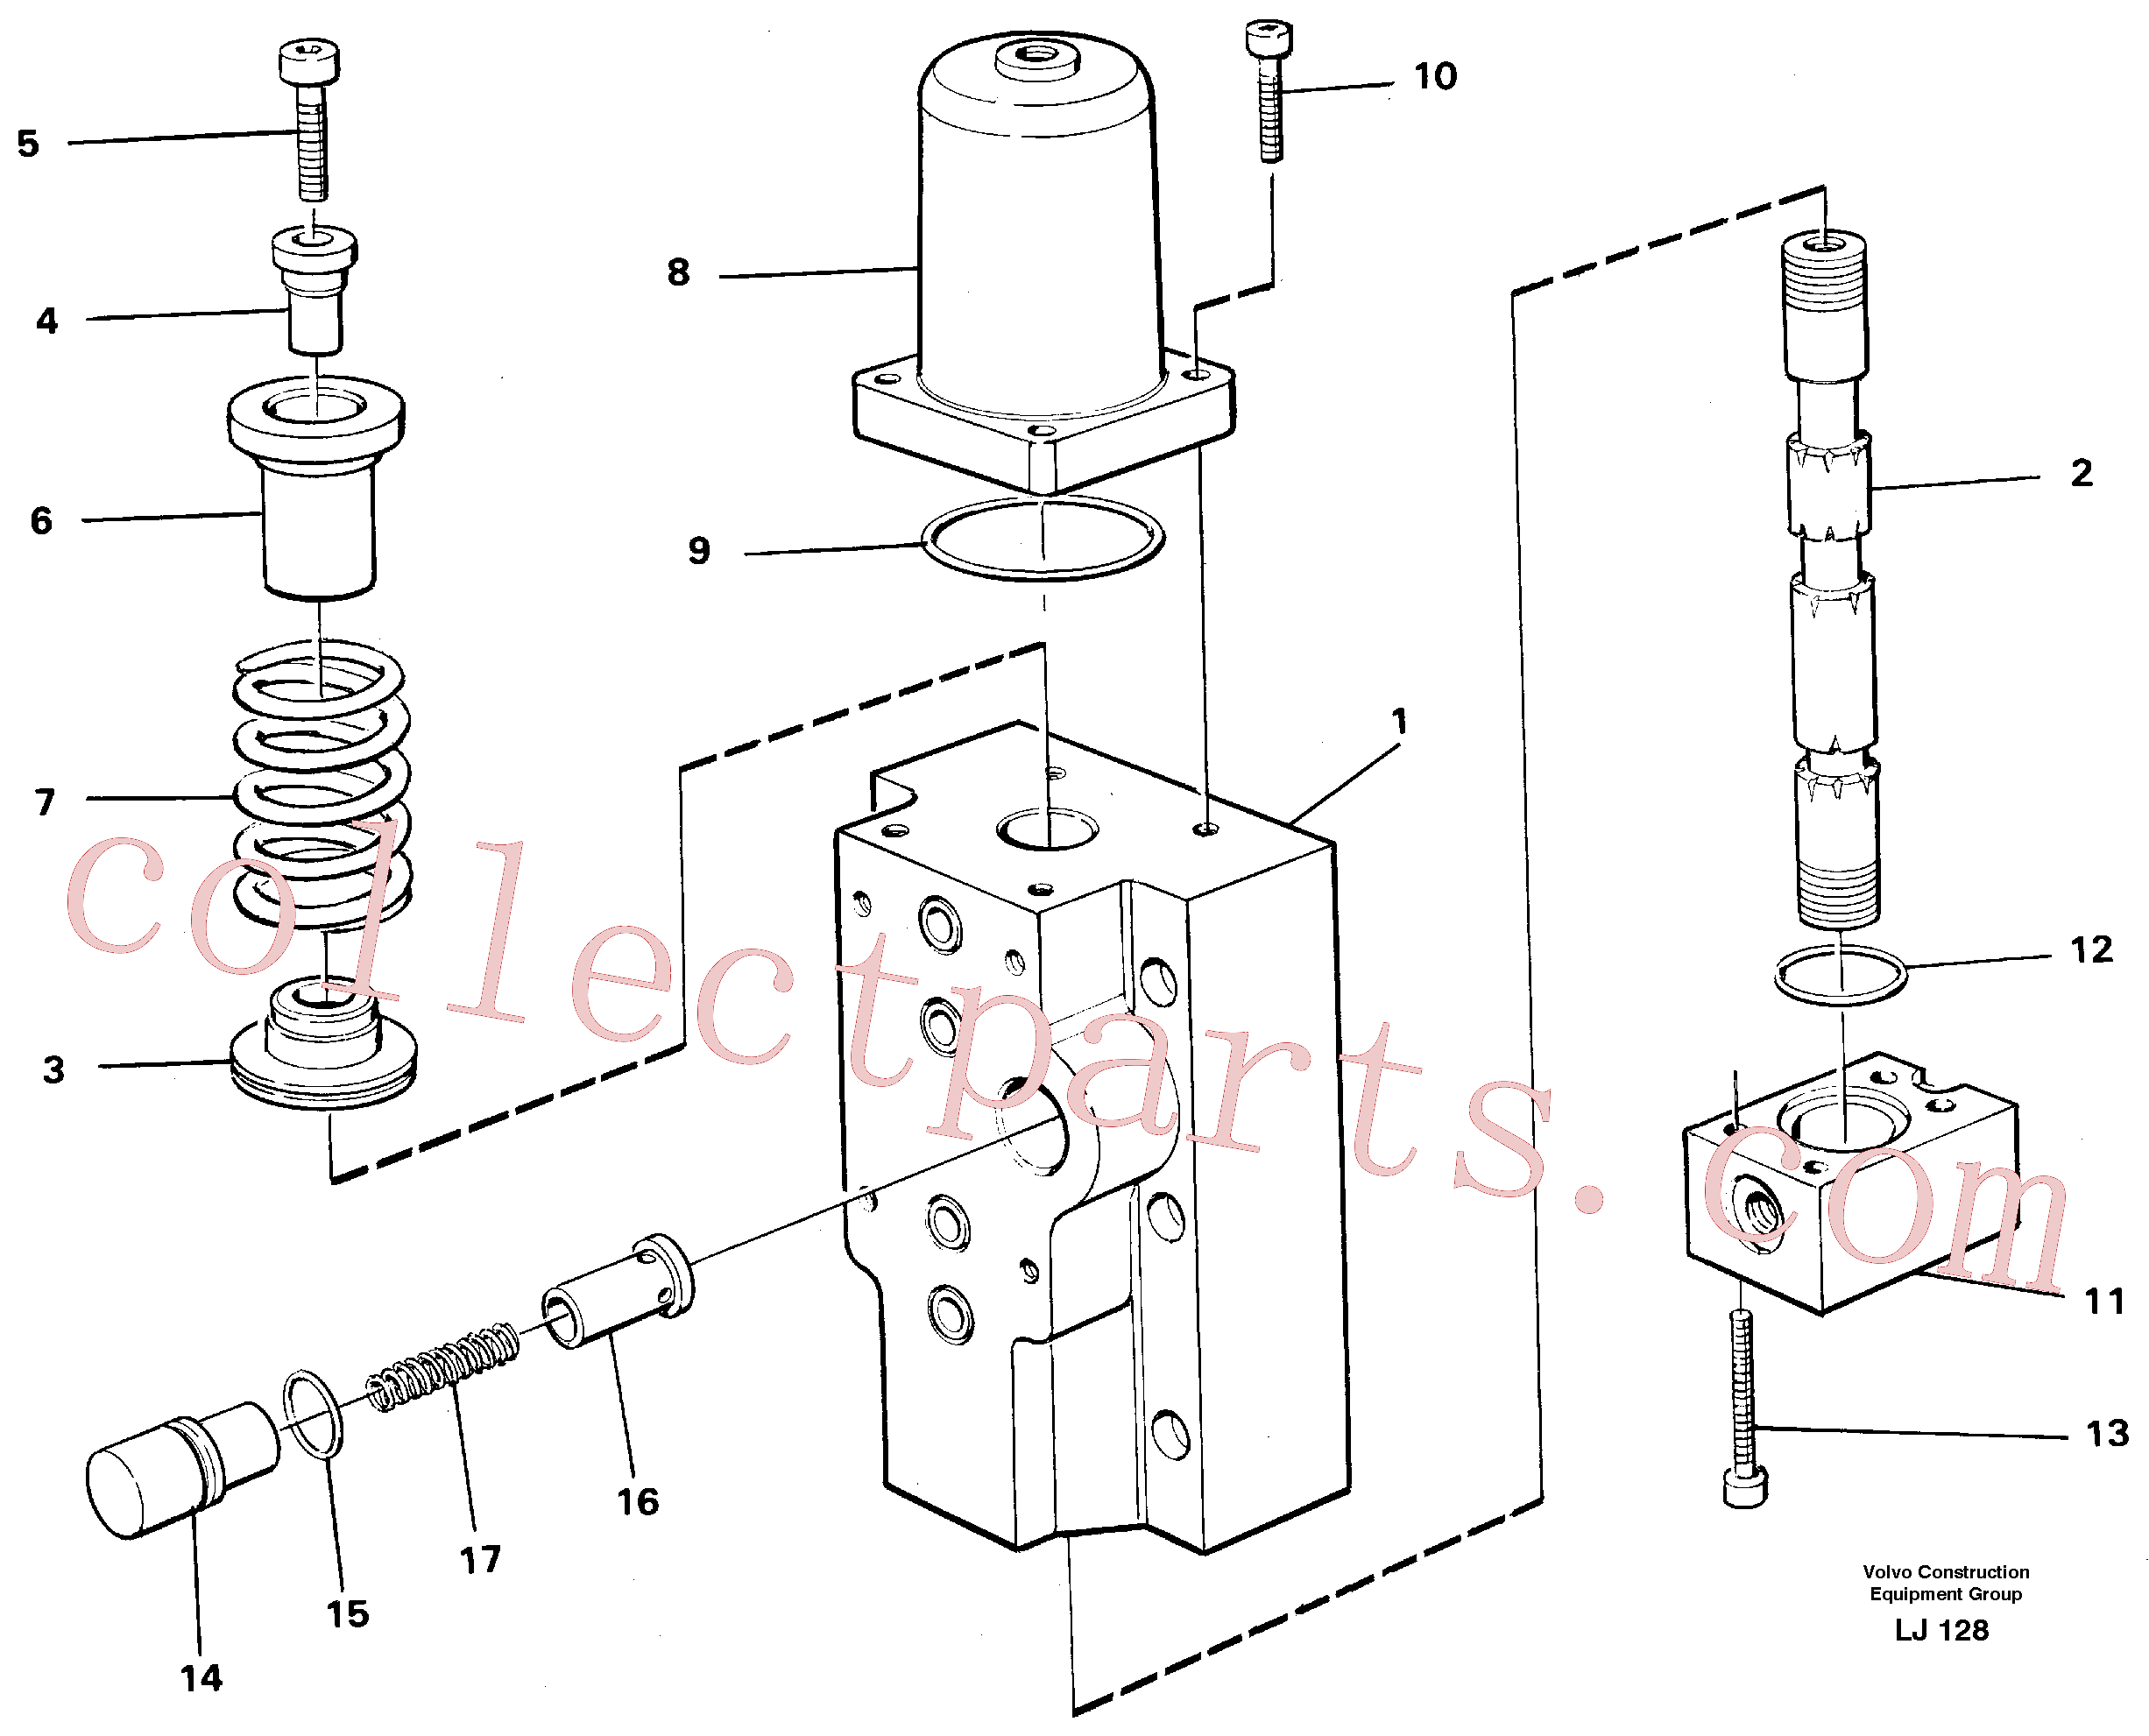 VOE14048548 for Volvo Four-way valves Primary, Four-way valve for hammer/shears(LJ128 assembly)